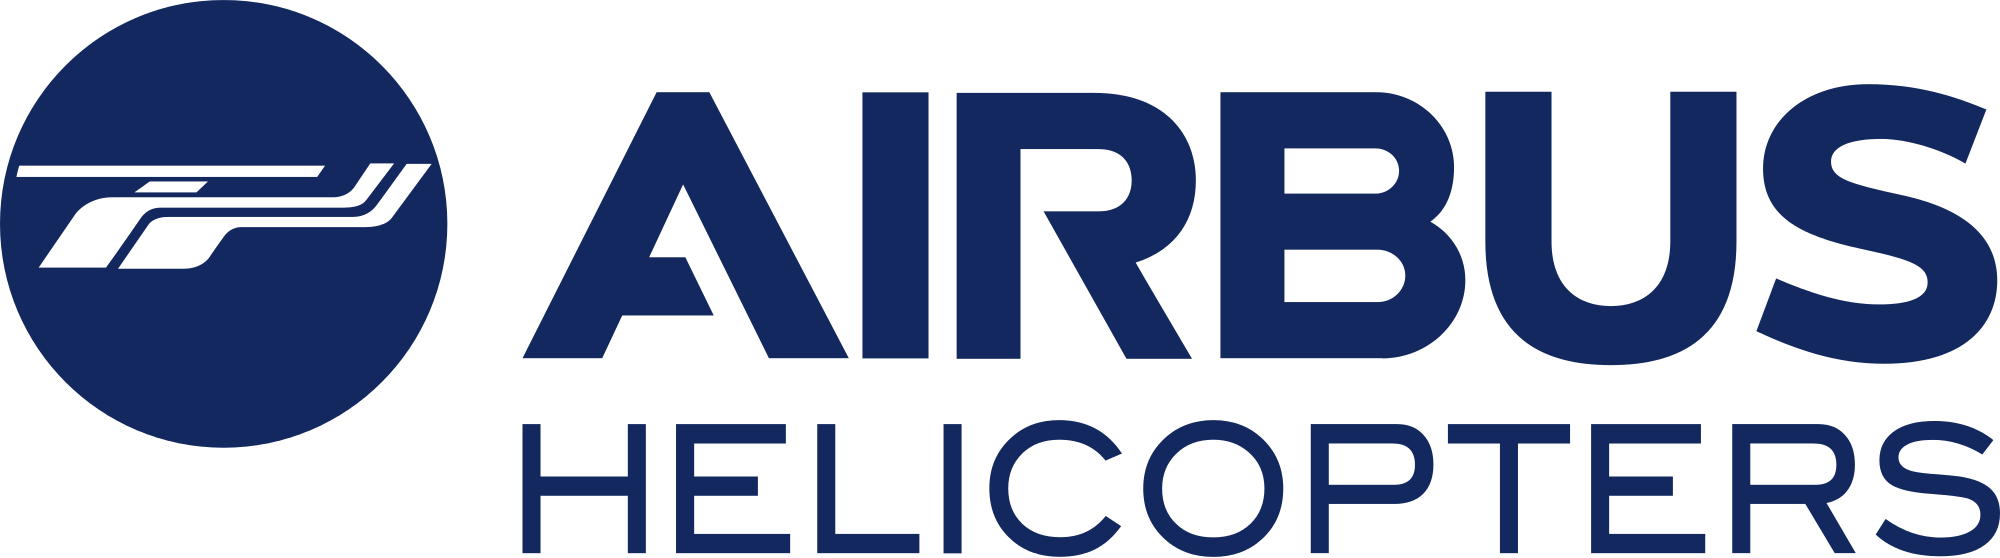 Helicopter logo png. File airbus helicopters svg